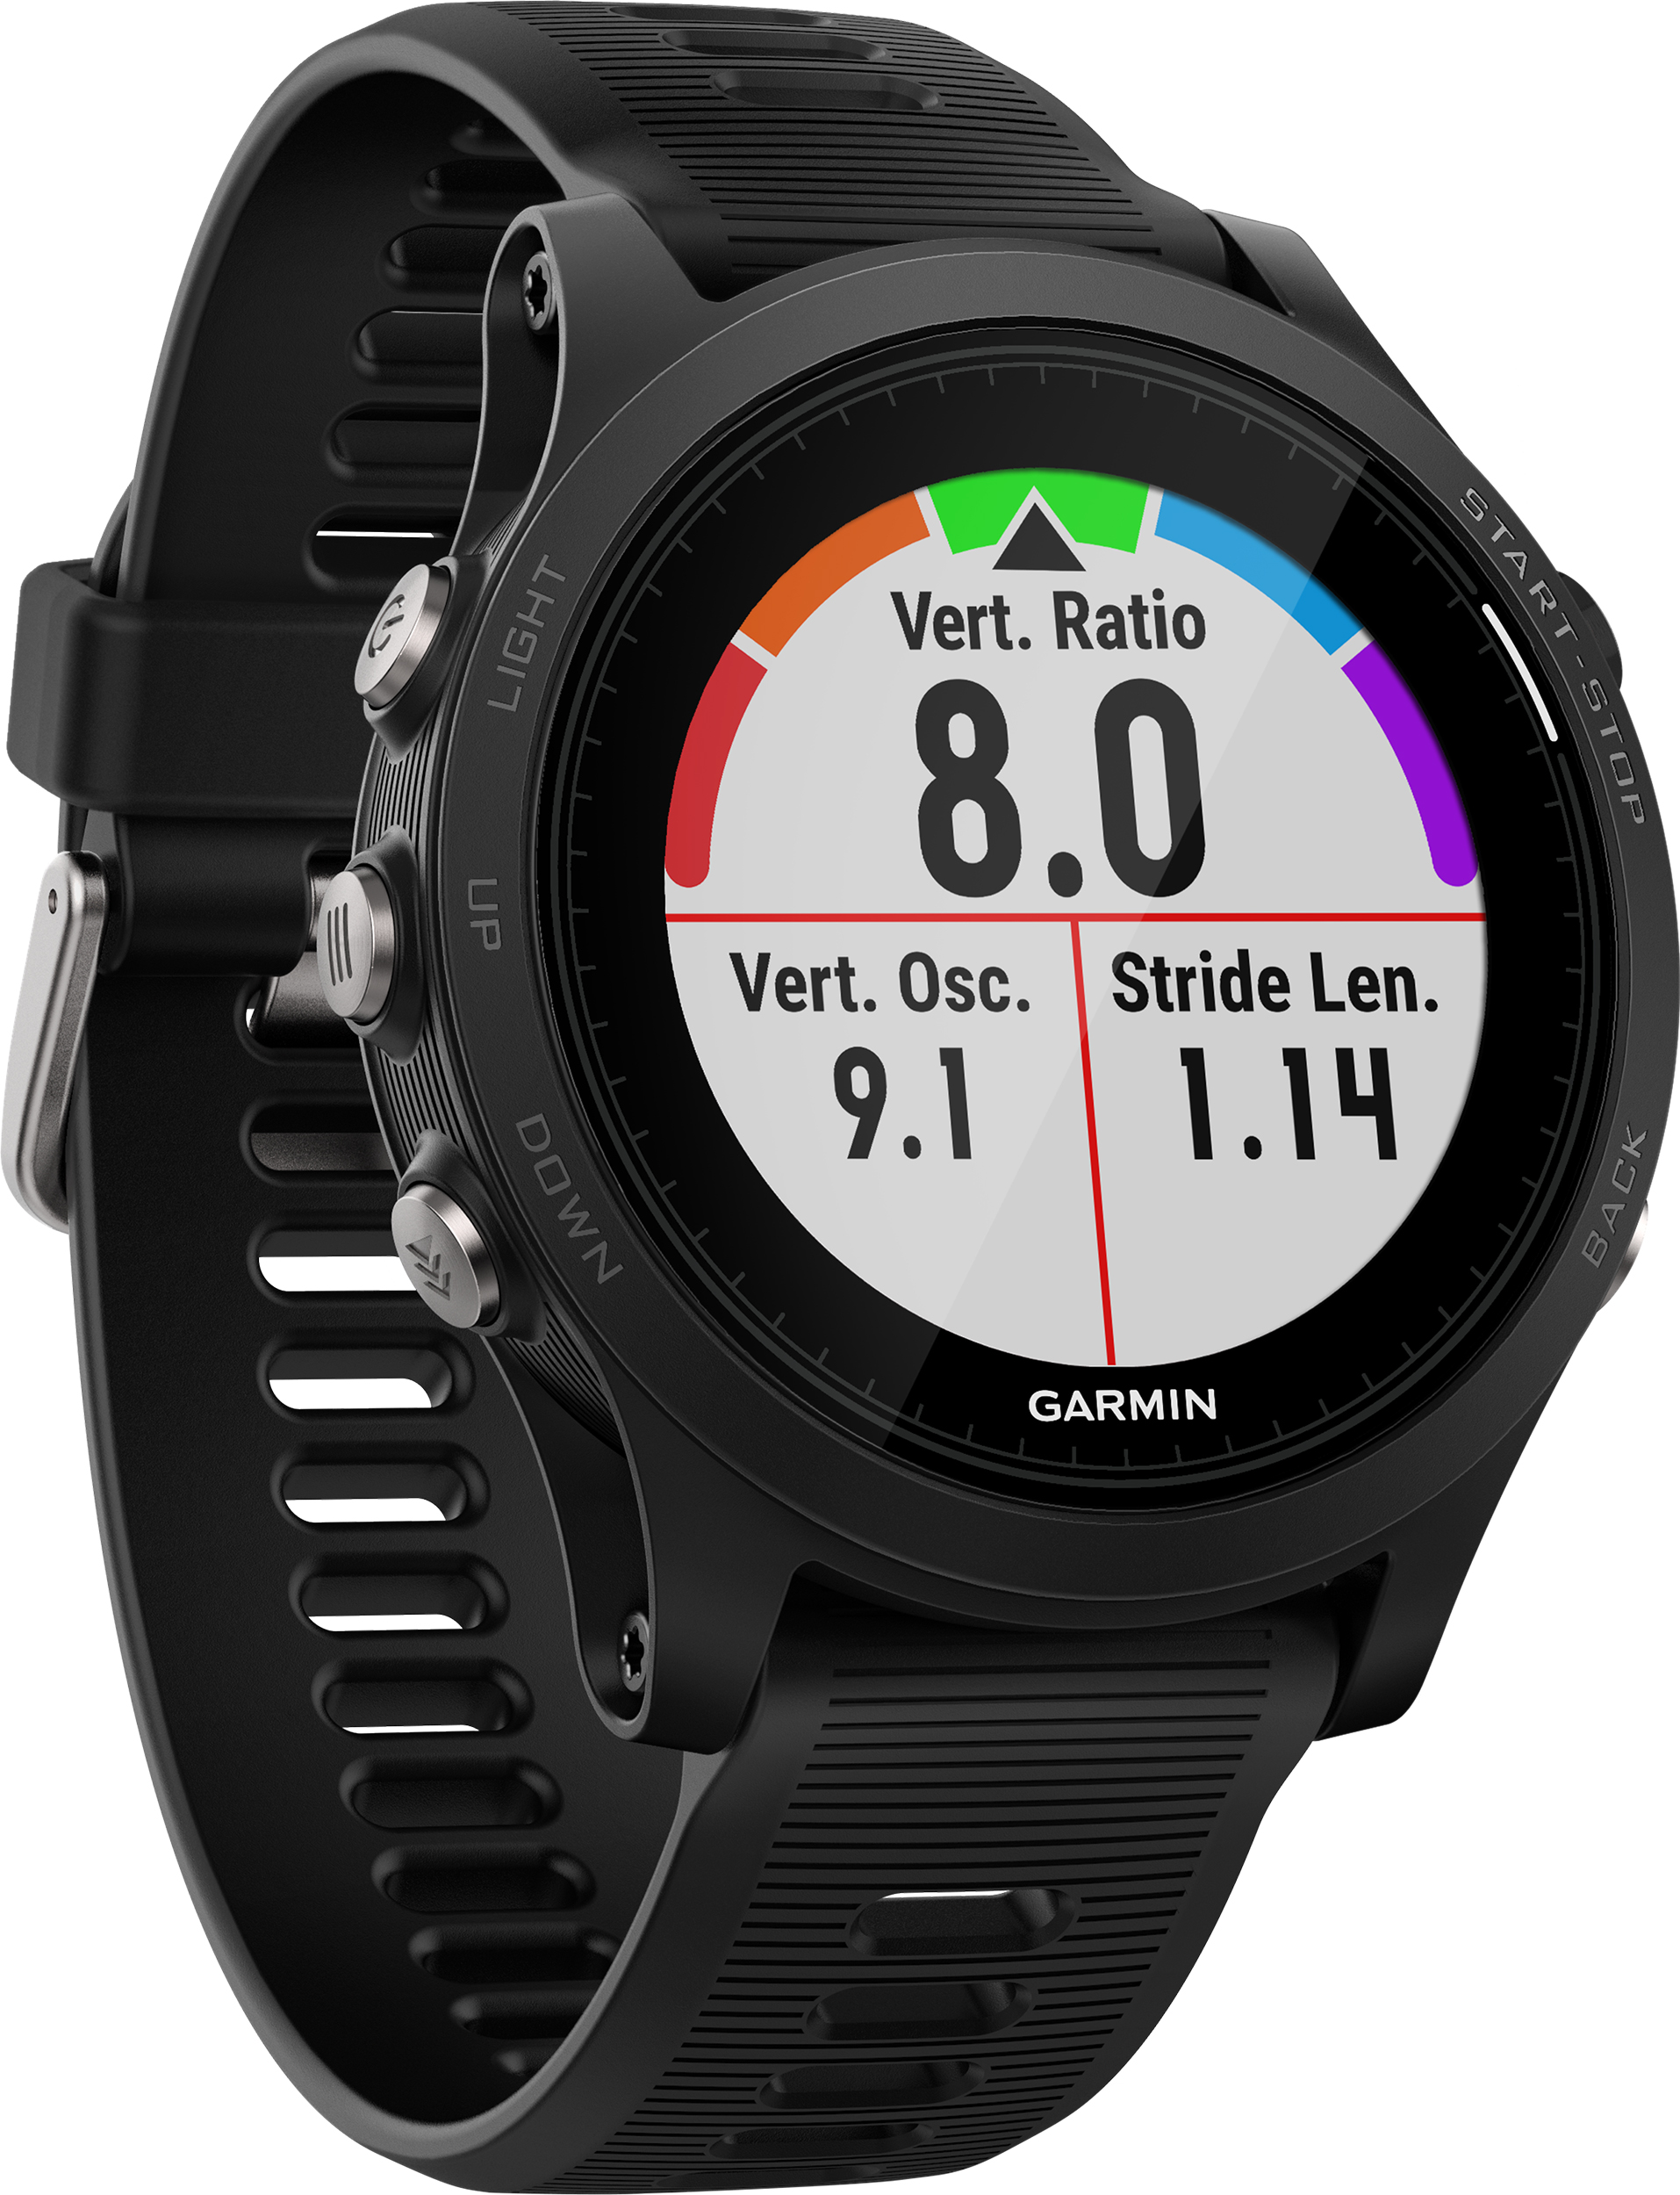 c watches gray sport watch garmin forerunner black product reg